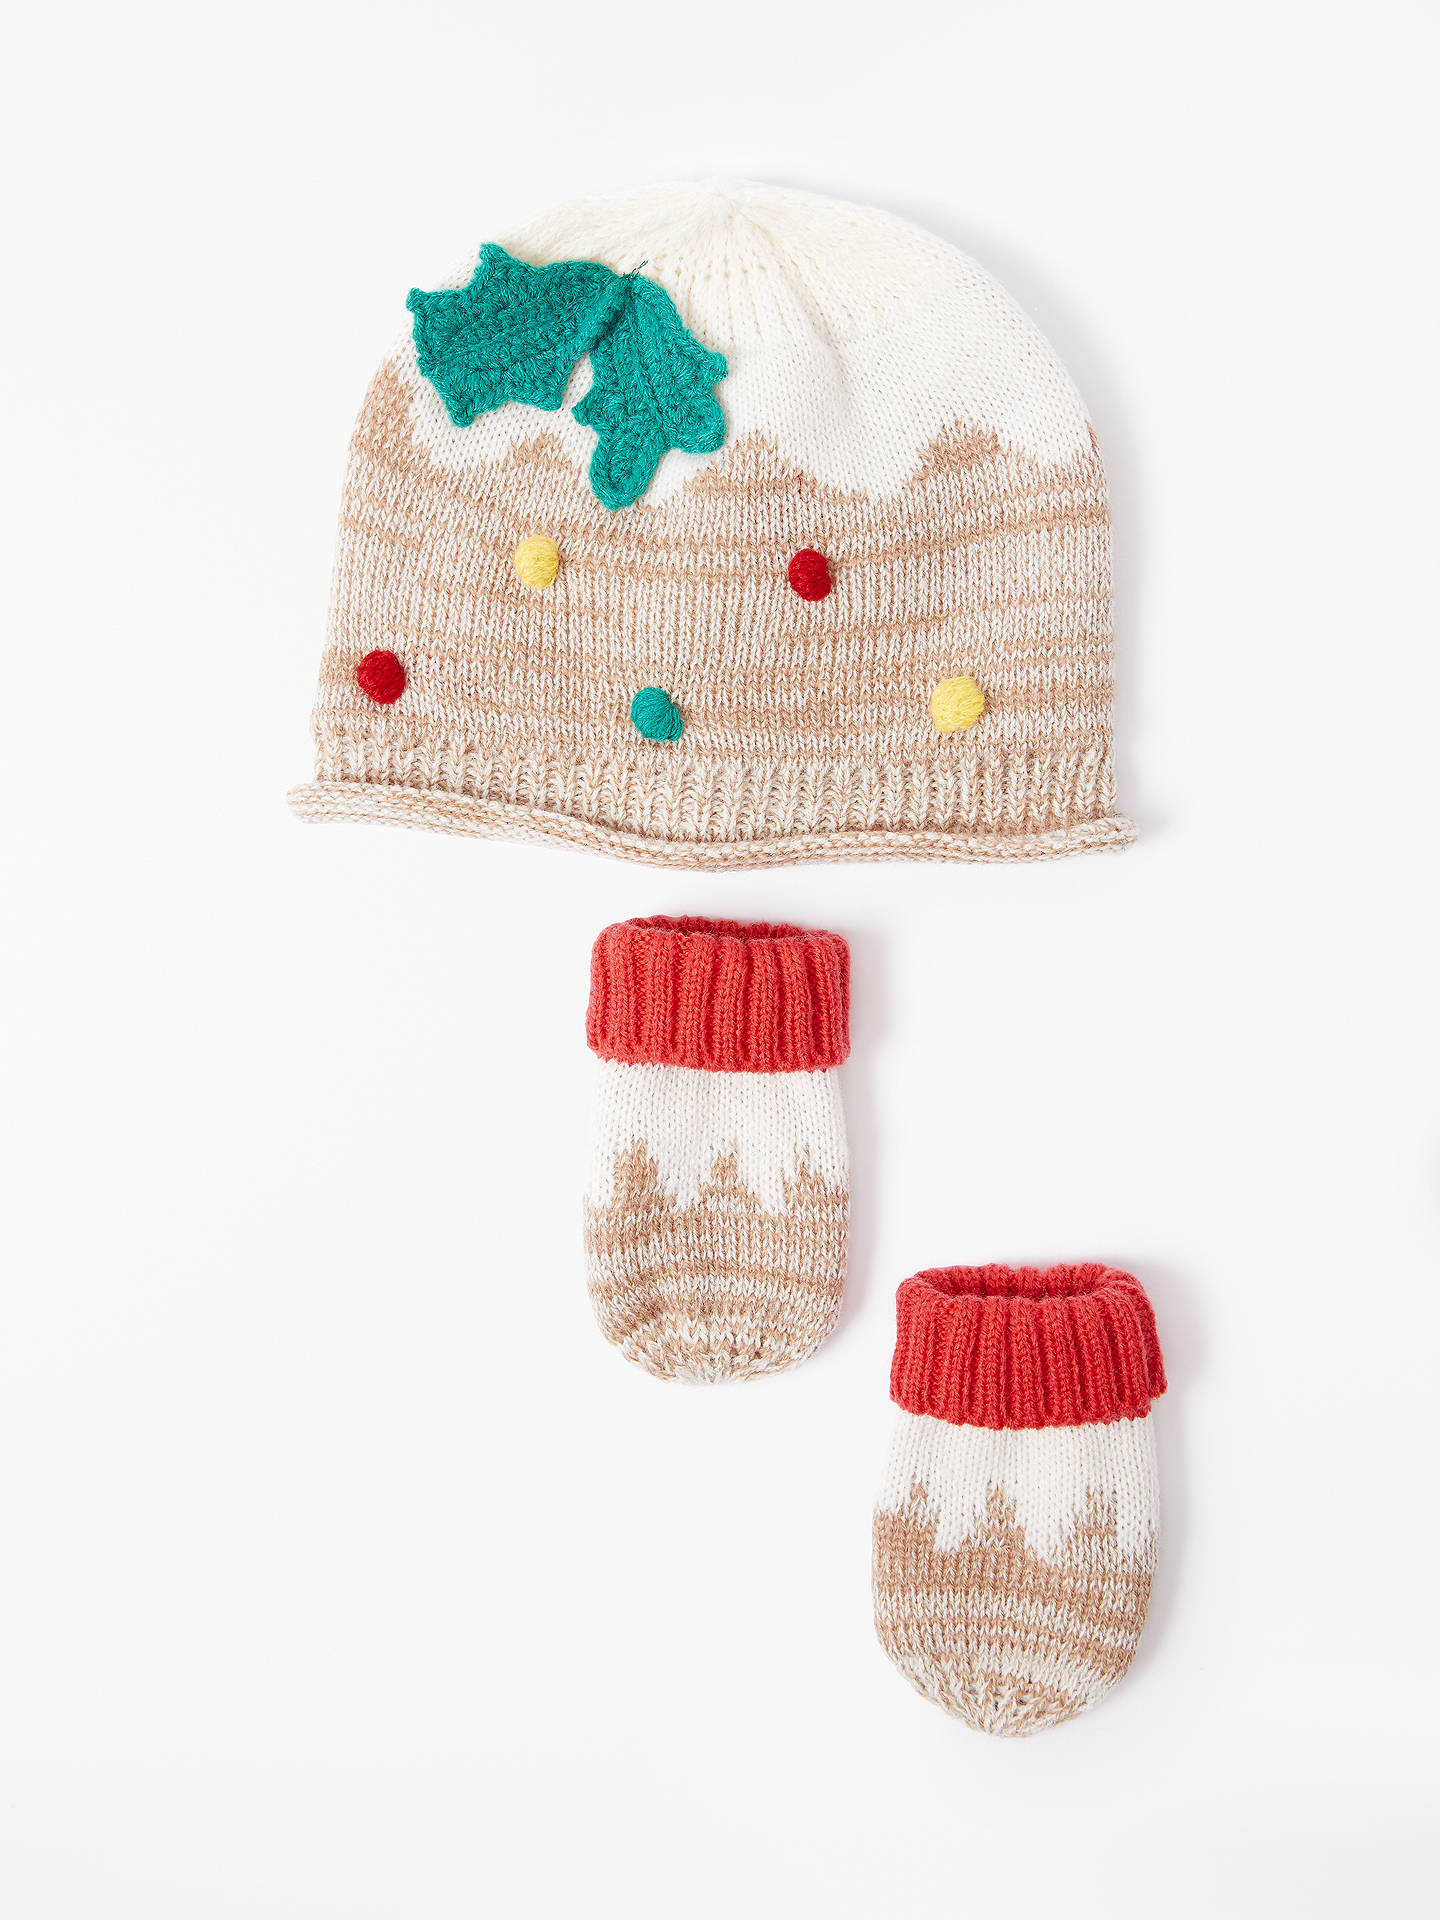 BuyJohn Lewis   Partners Baby Christmas Pudding Hat and Mitt Set 4eb022d8ab71